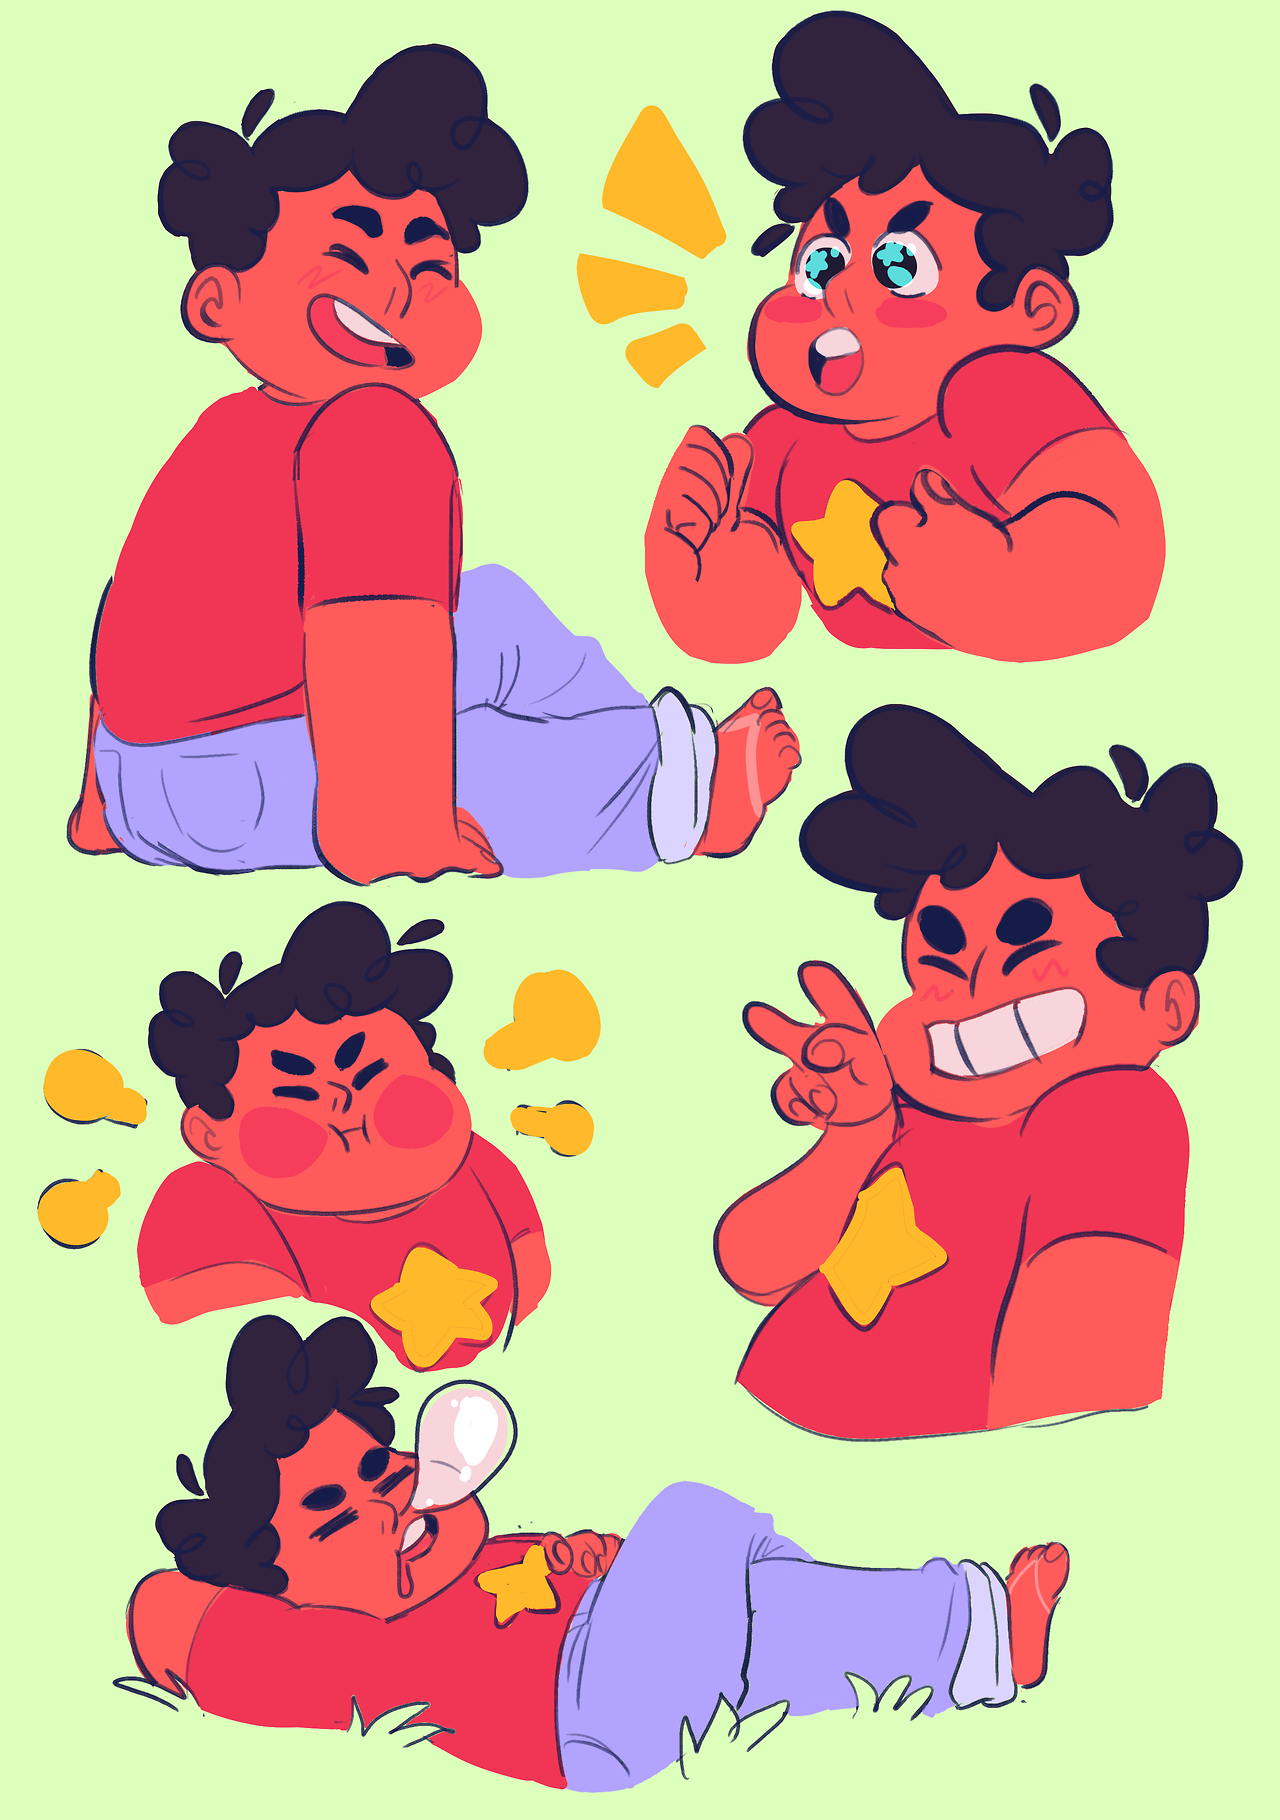 cleaned up some old doodles of my son